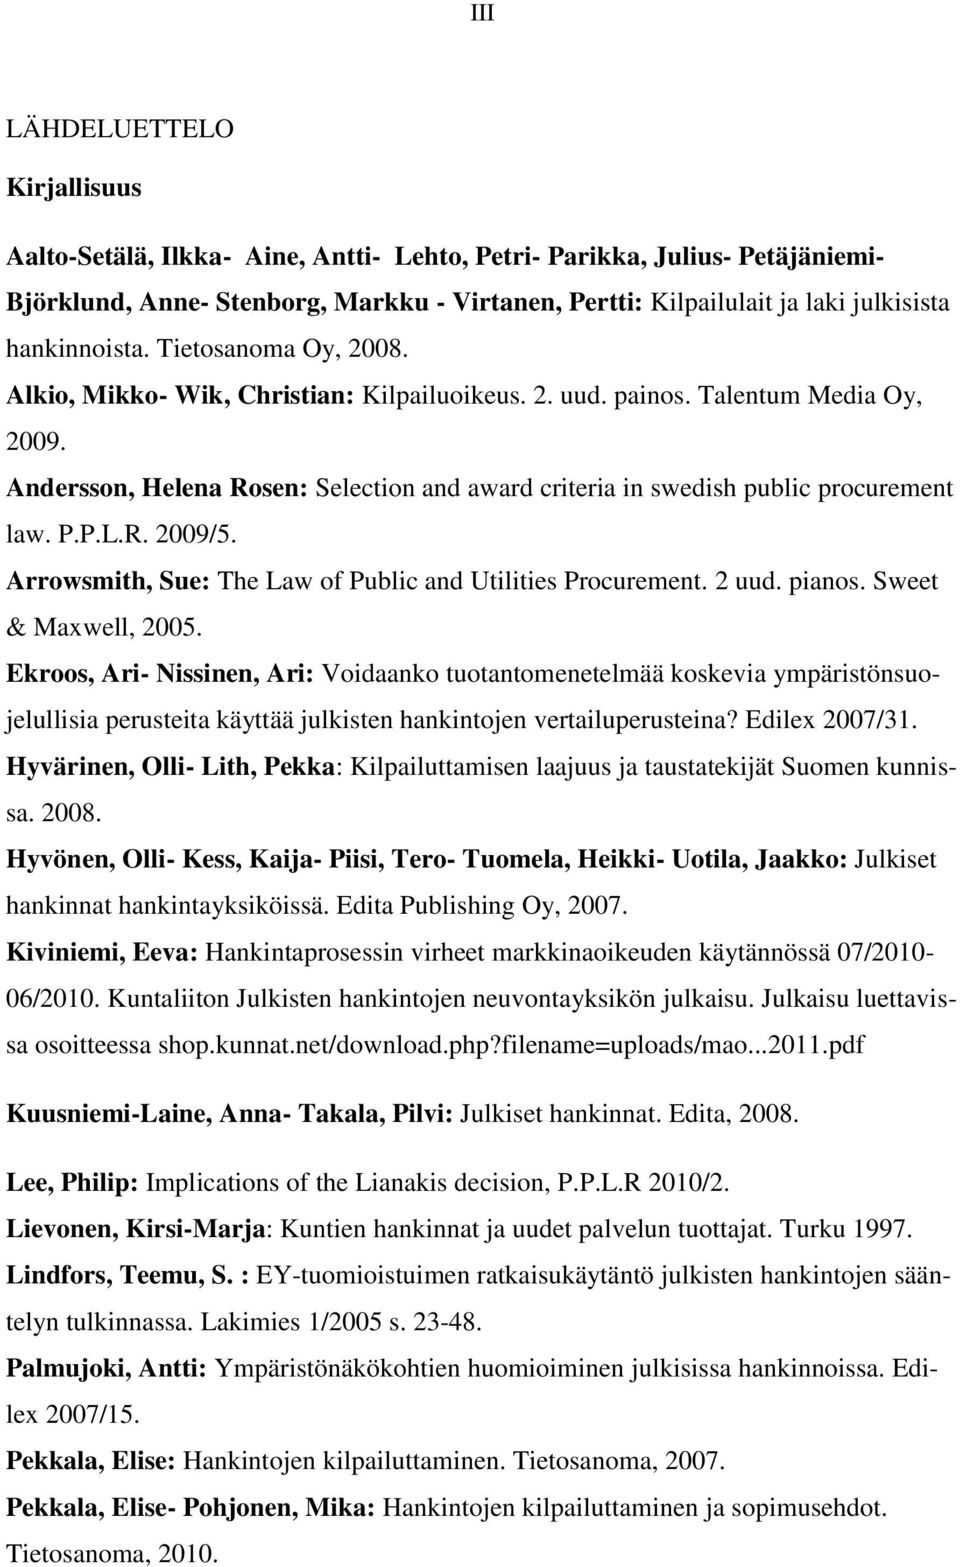 Andersson, Helena Rosen: Selection and award criteria in swedish public procurement law. P.P.L.R. 2009/5. Arrowsmith, Sue: The Law of Public and Utilities Procurement. 2 uud. pianos.